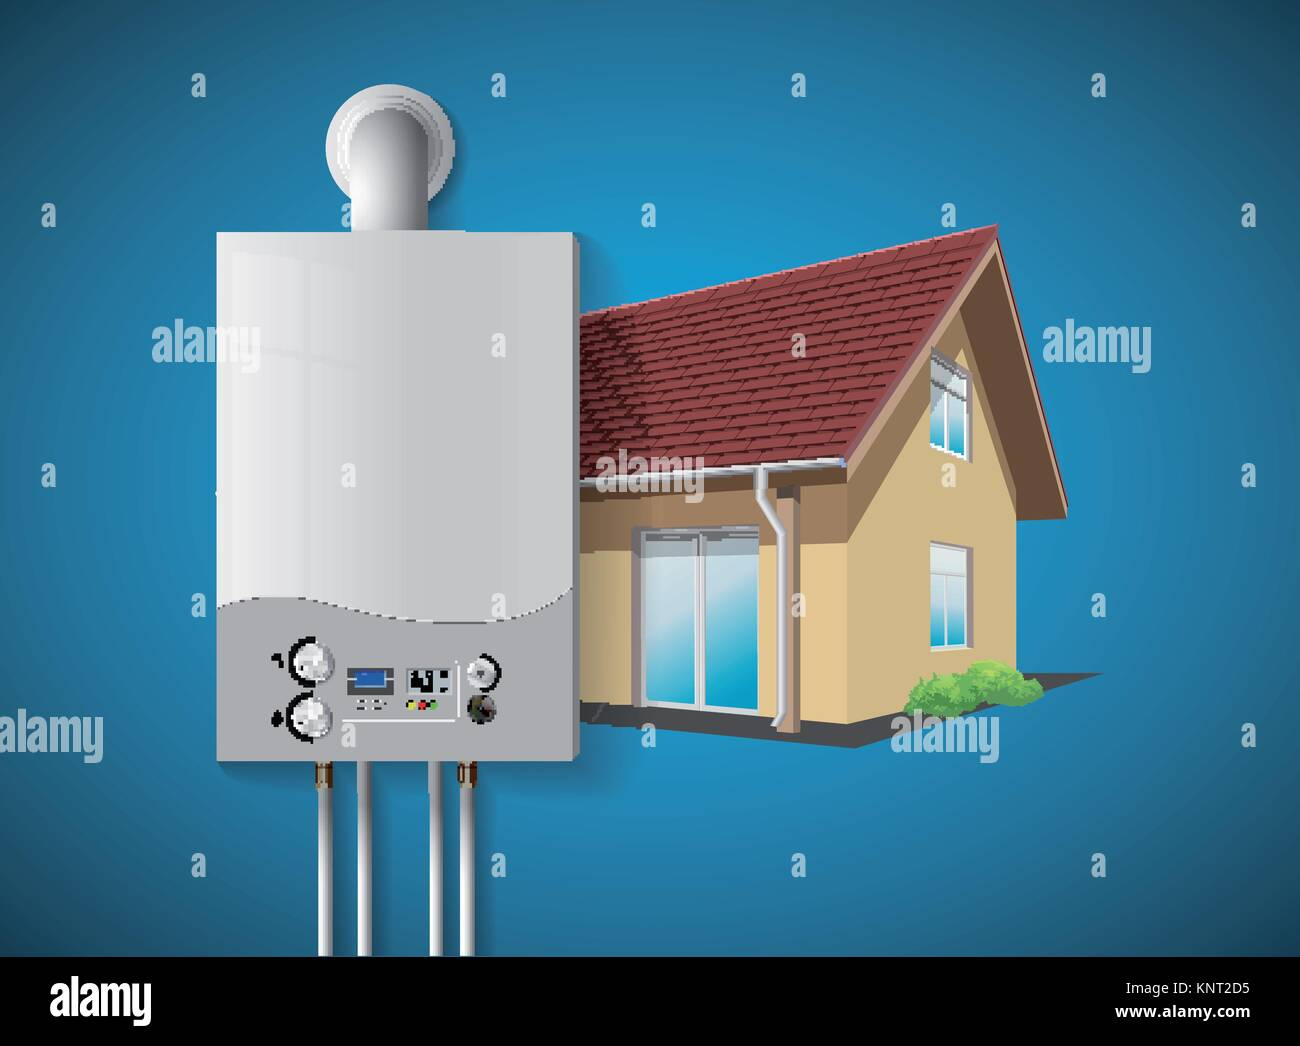 House heating concept - modern home gas fired boiler - energy and cash savings – stock illustration - Stock Image